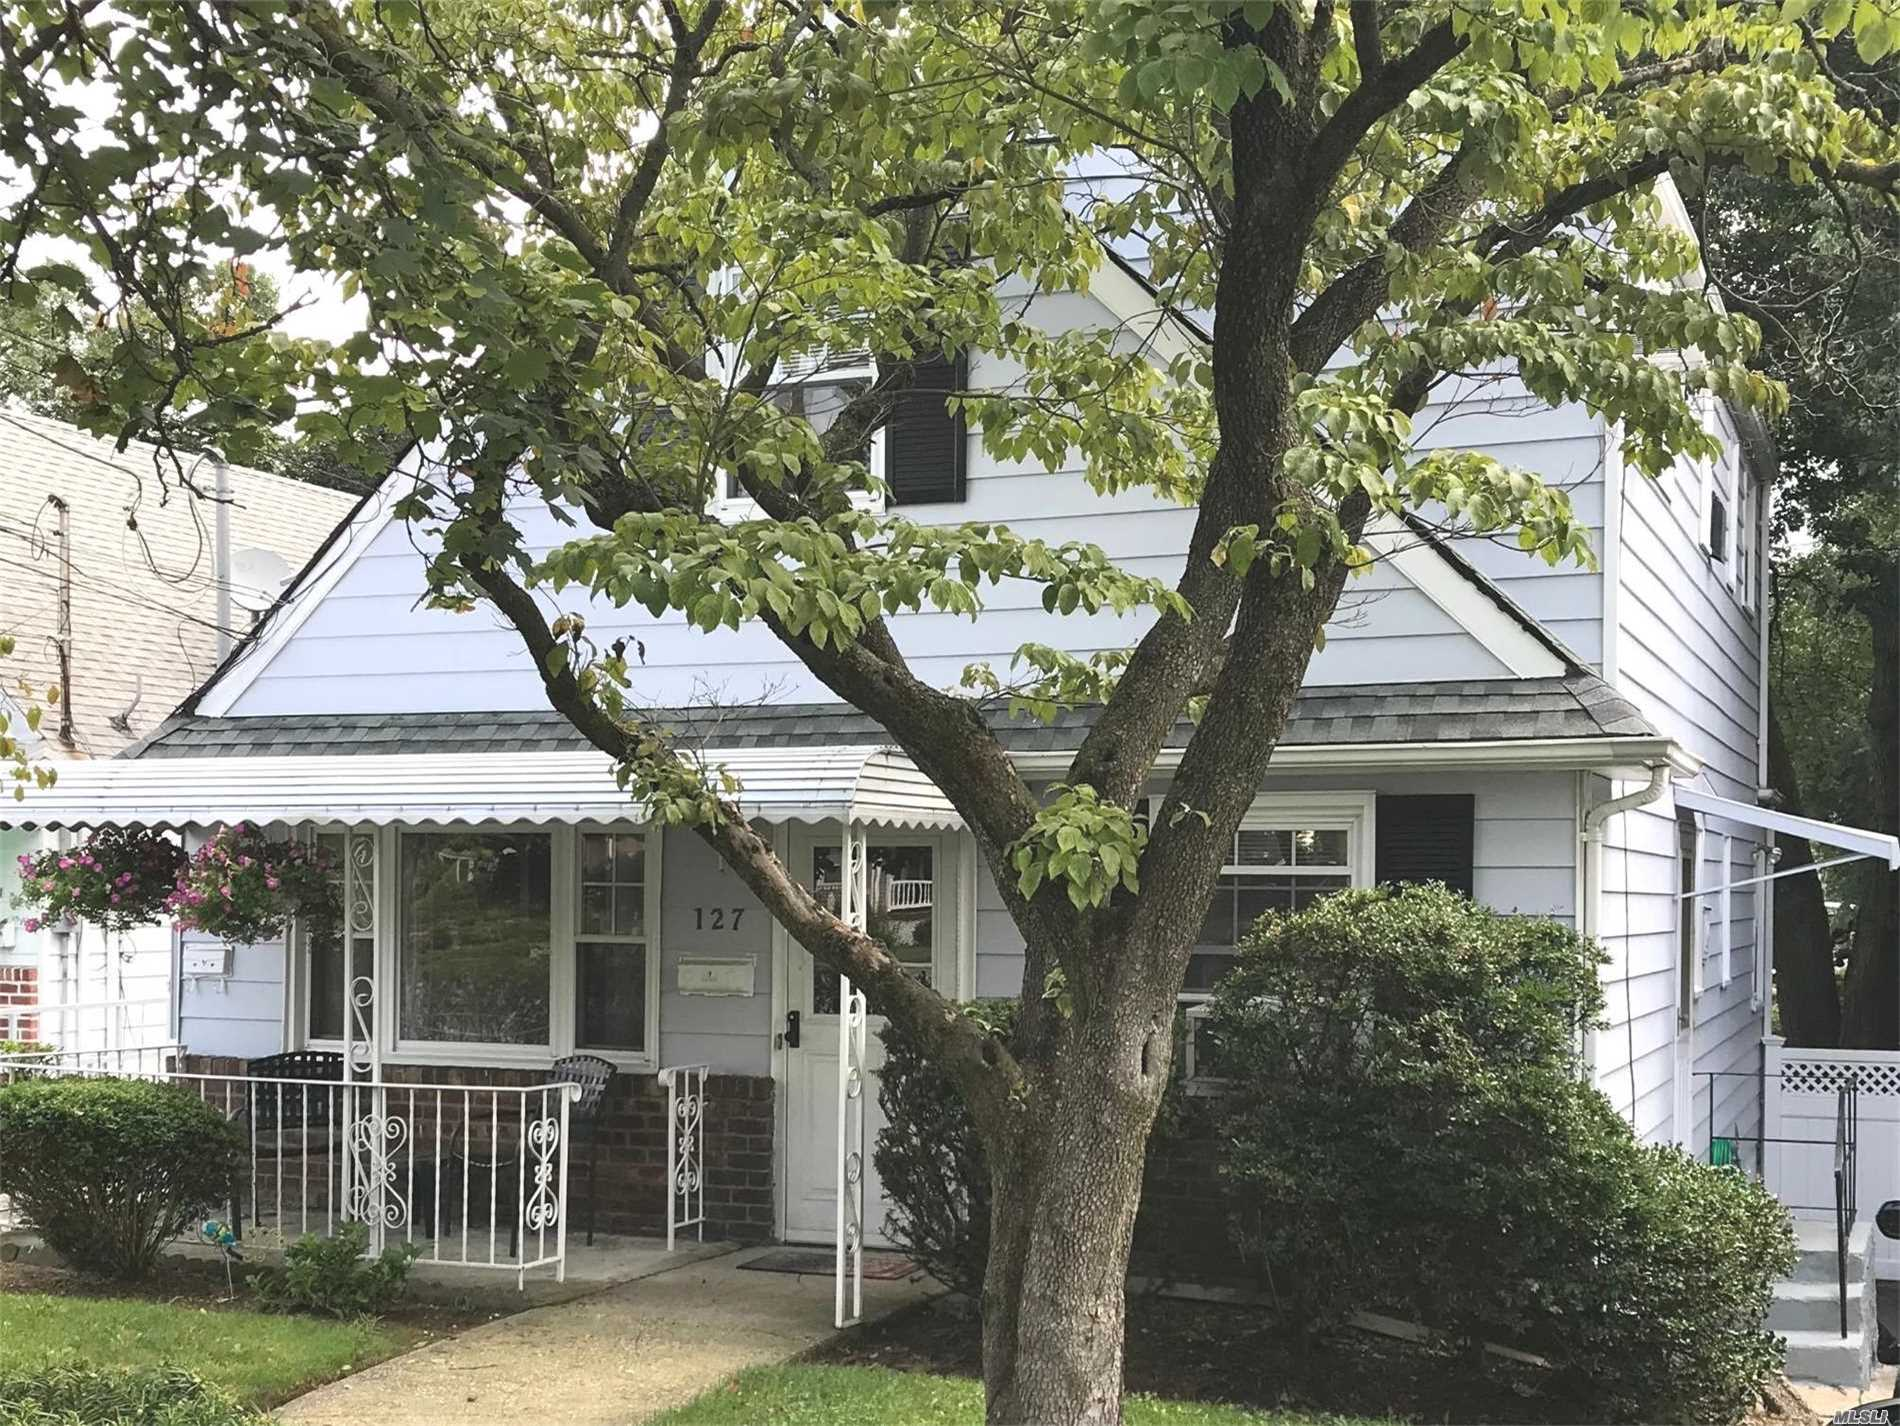 Legal Two Family On Quiet Block. Many Updates: Roof, Windows, Kitchen And Baths. Full Basement With Outside Entrance. Nice Size Property W/Private Multi-Car Driveway. Great Investment Opportunity!!